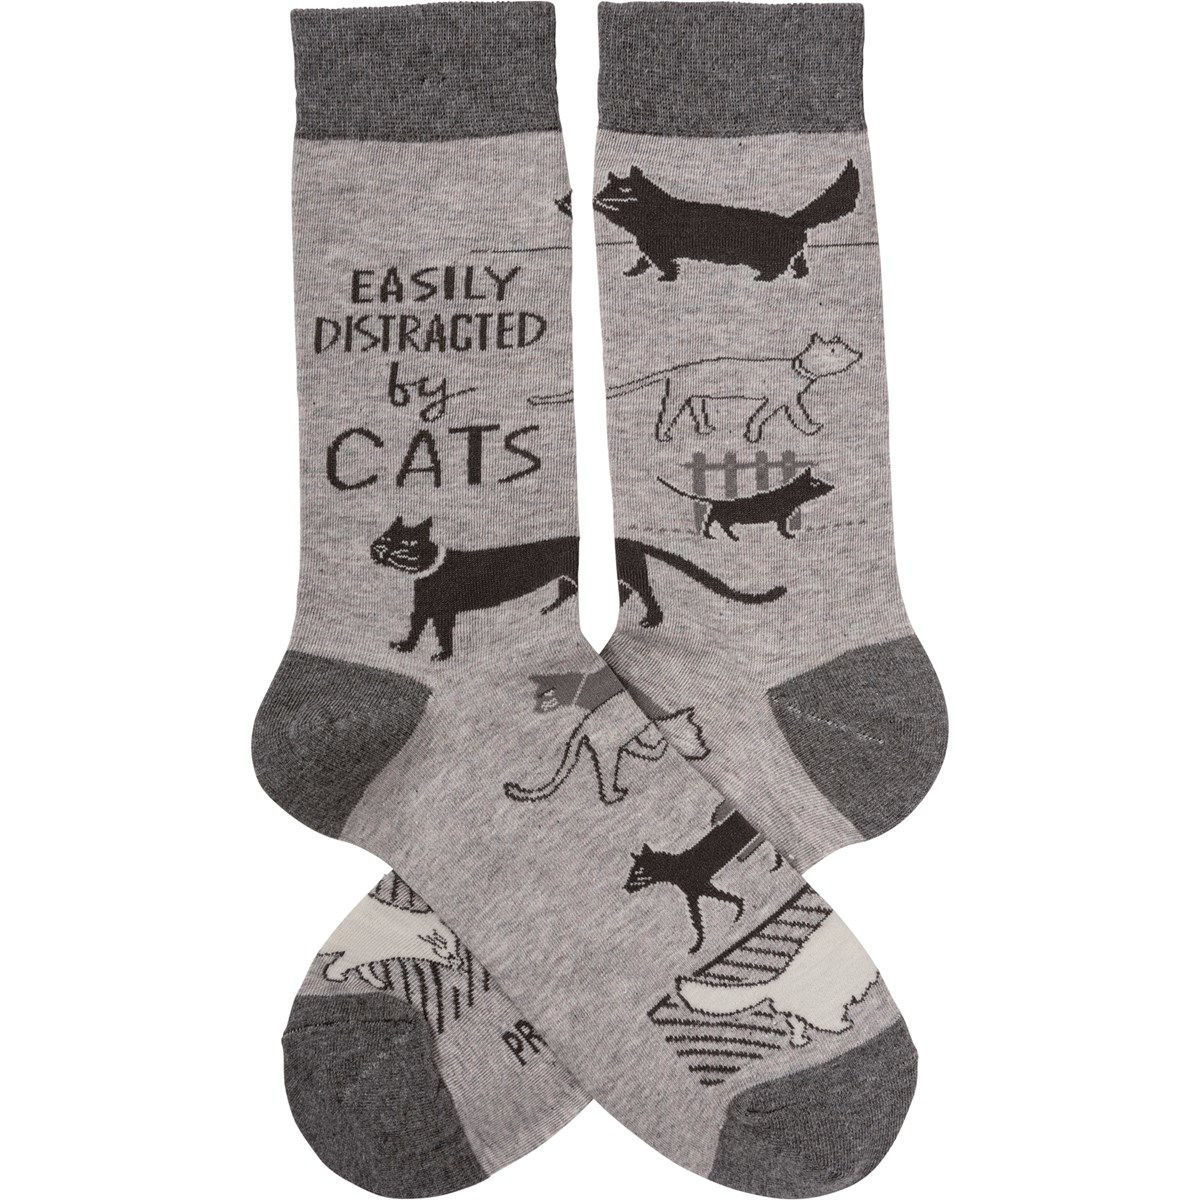 Easily Distracted Socks by Primitives by Kathy